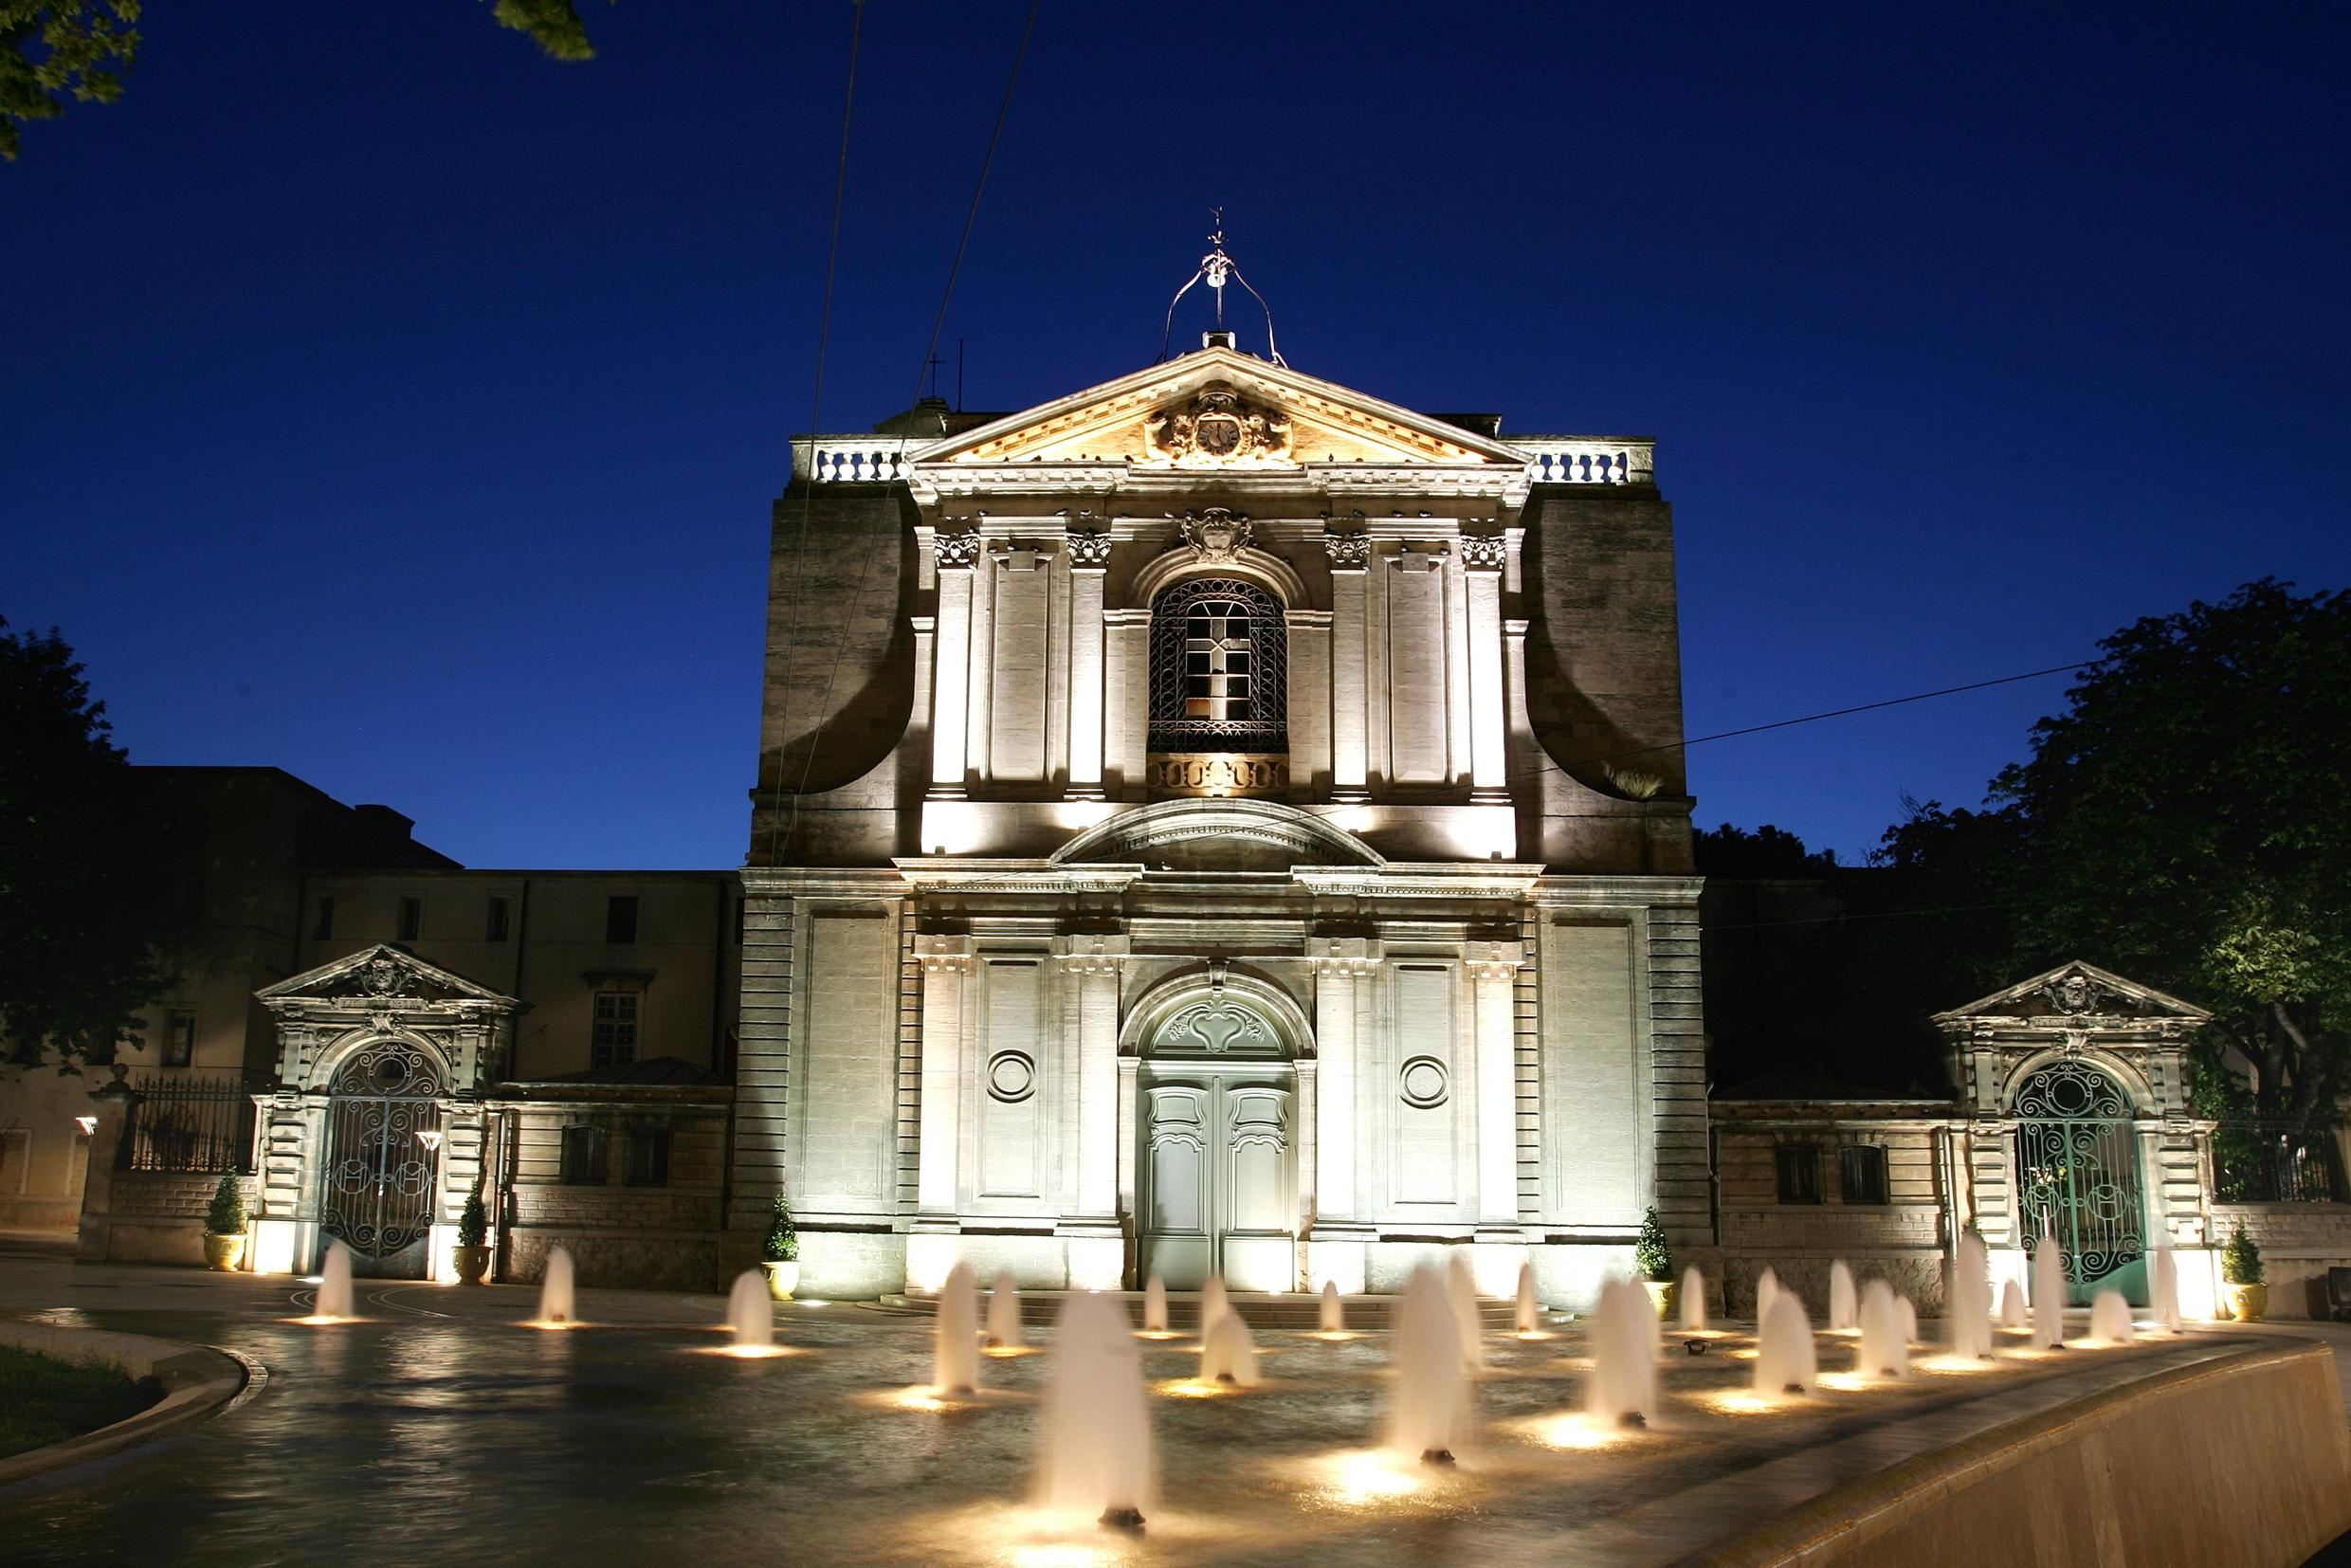 Guided tour: Chapel Saint Charles